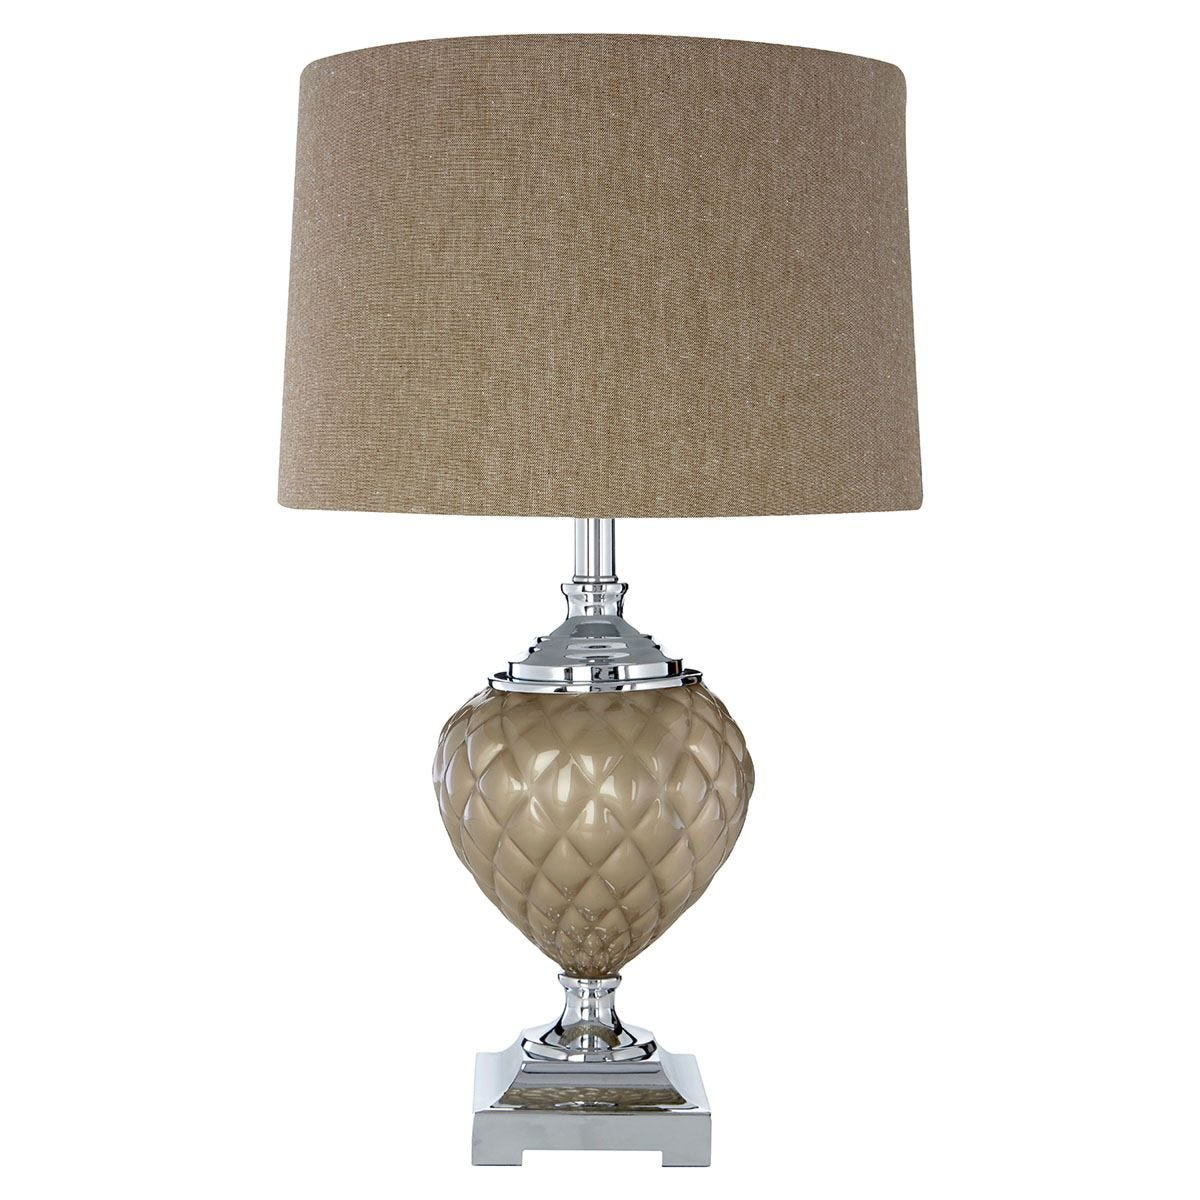 Premier Housewares Ulla Table Lamp with Mink Shade